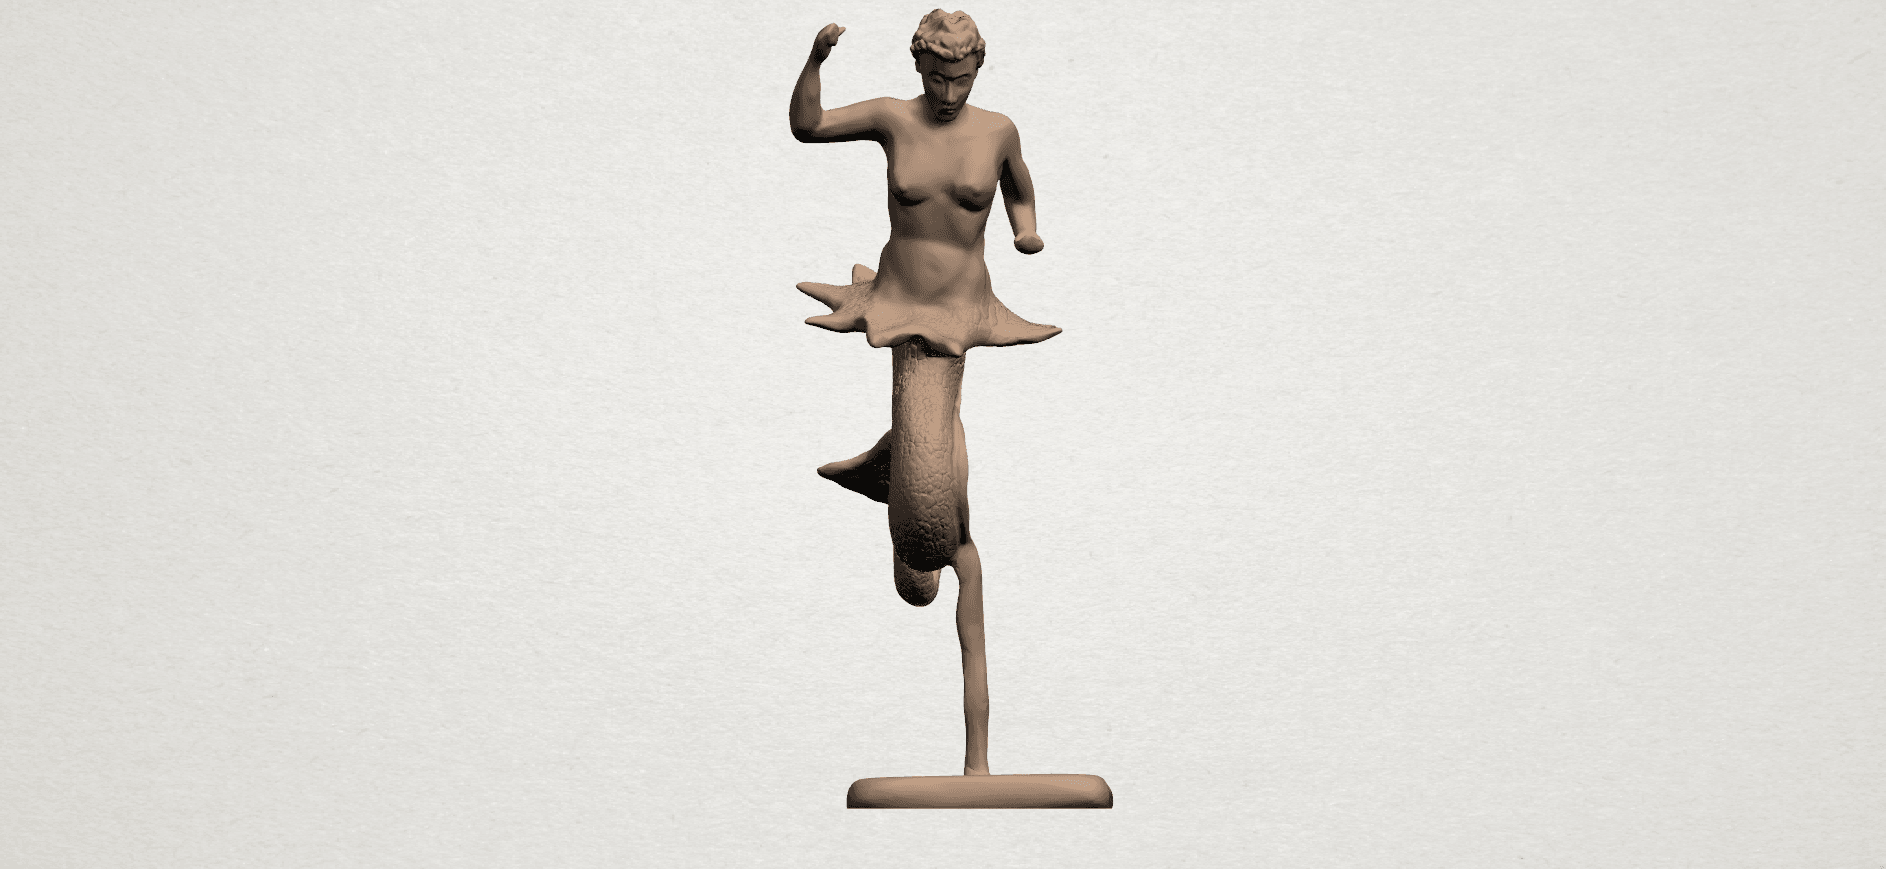 Ophidian A03.png Download free STL file Ophidian • 3D printing template, GeorgesNikkei